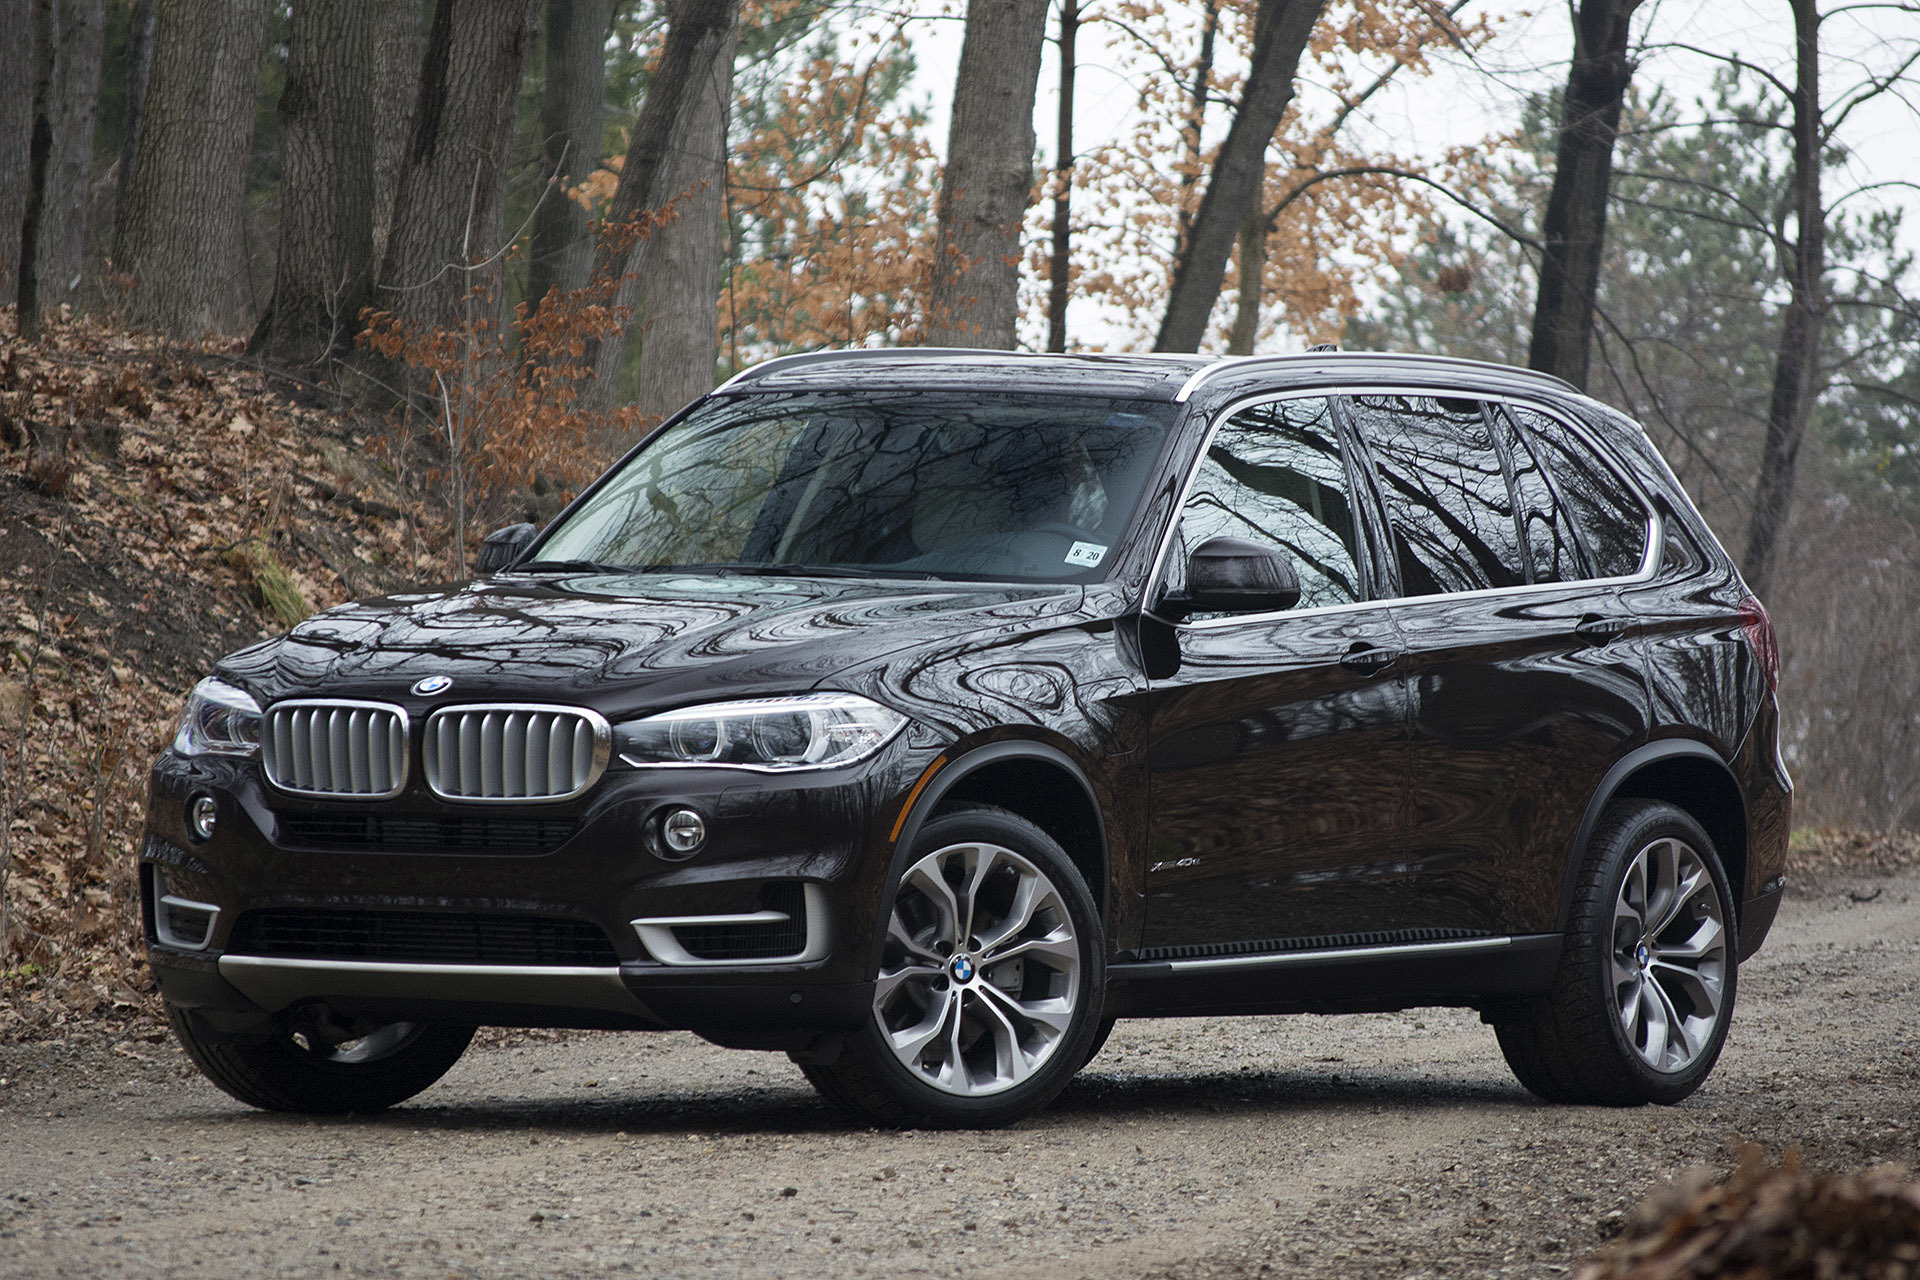 2016 Bmw X5 Xdrive40e Review W Video Autoblog